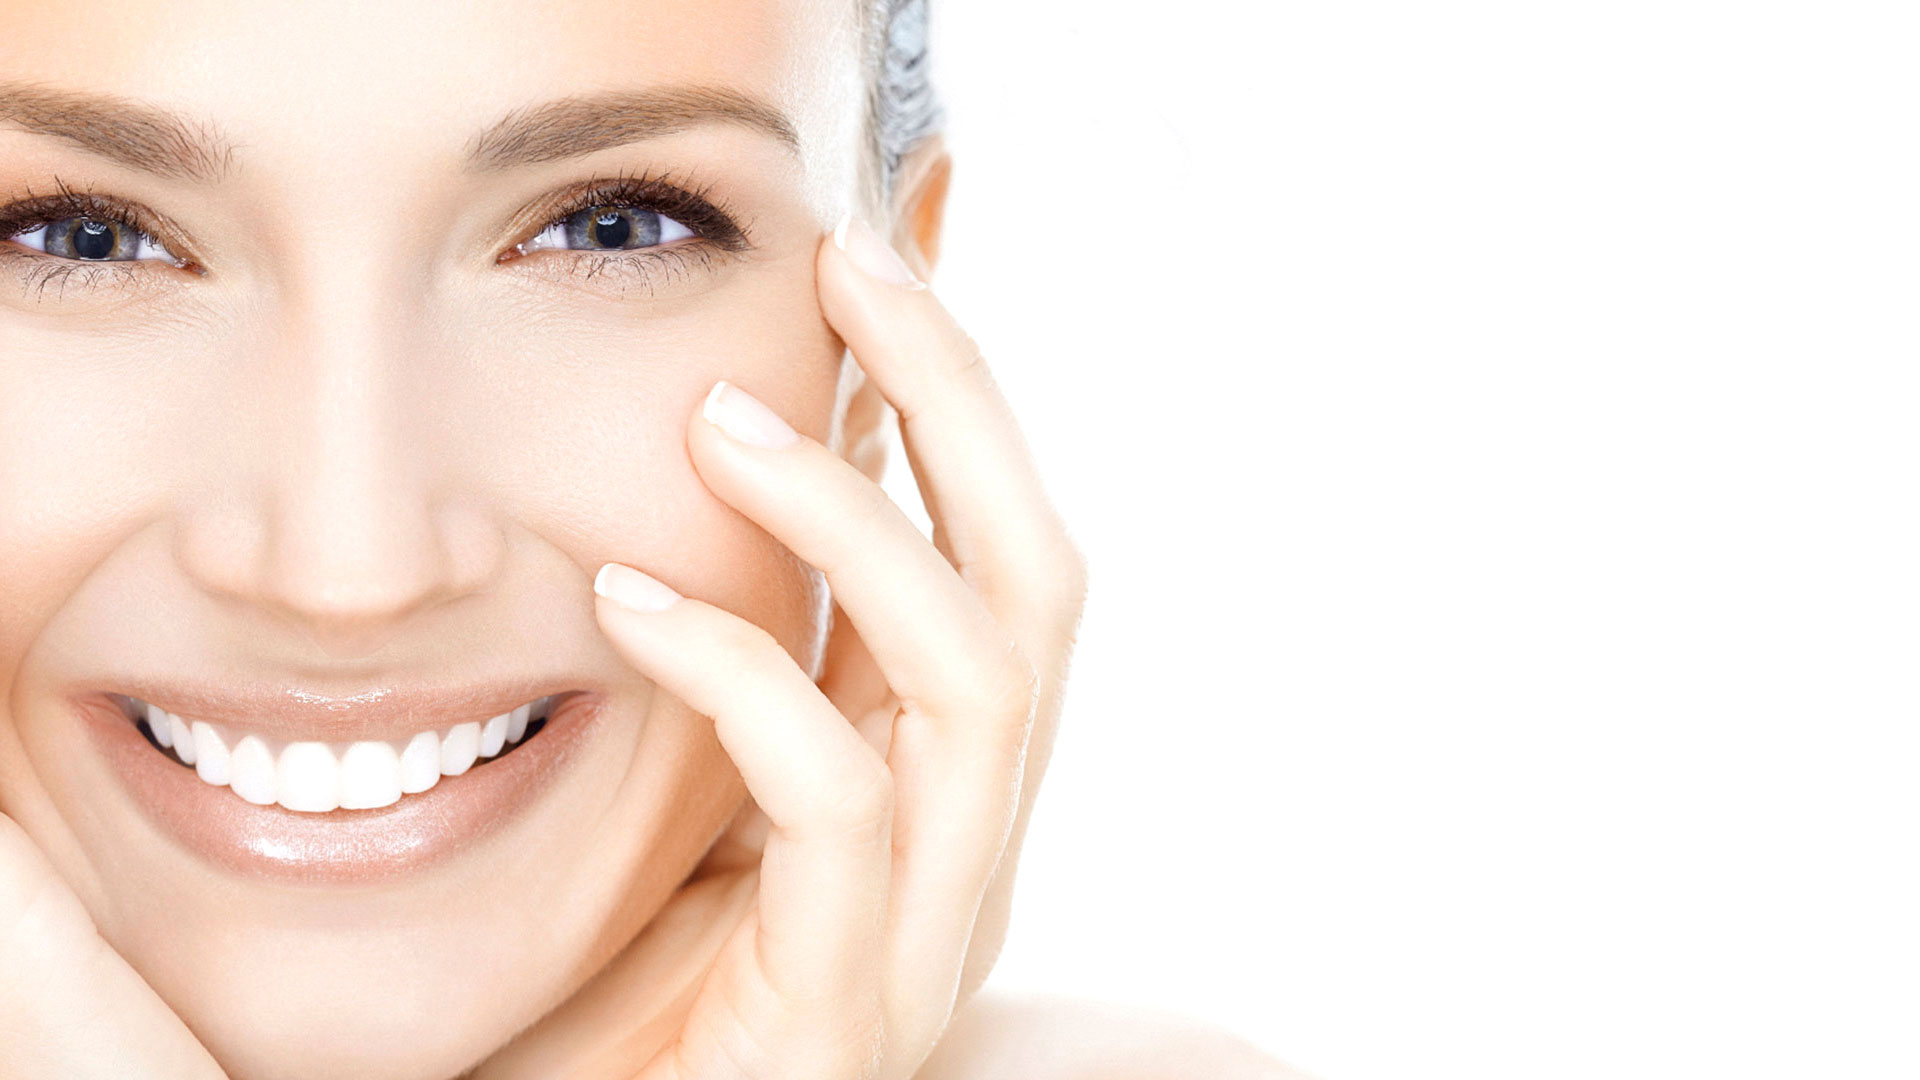 ORGANIC FACIALS - Every 27 to 37 days your amazing skin regenerates completely with fresh, youthful skin cells. However this leaves the sensitive skin around your face and neck covered with the pore-clogging dead skin cells from last month. While proper hygiene and regular exercise may help remove some of these cells, the best way is to treat yourself to one of our European-grade-organic facials. We invite you to share your skin's story and your goals for it. Rest assured we will do everything in our power to help you reach them.